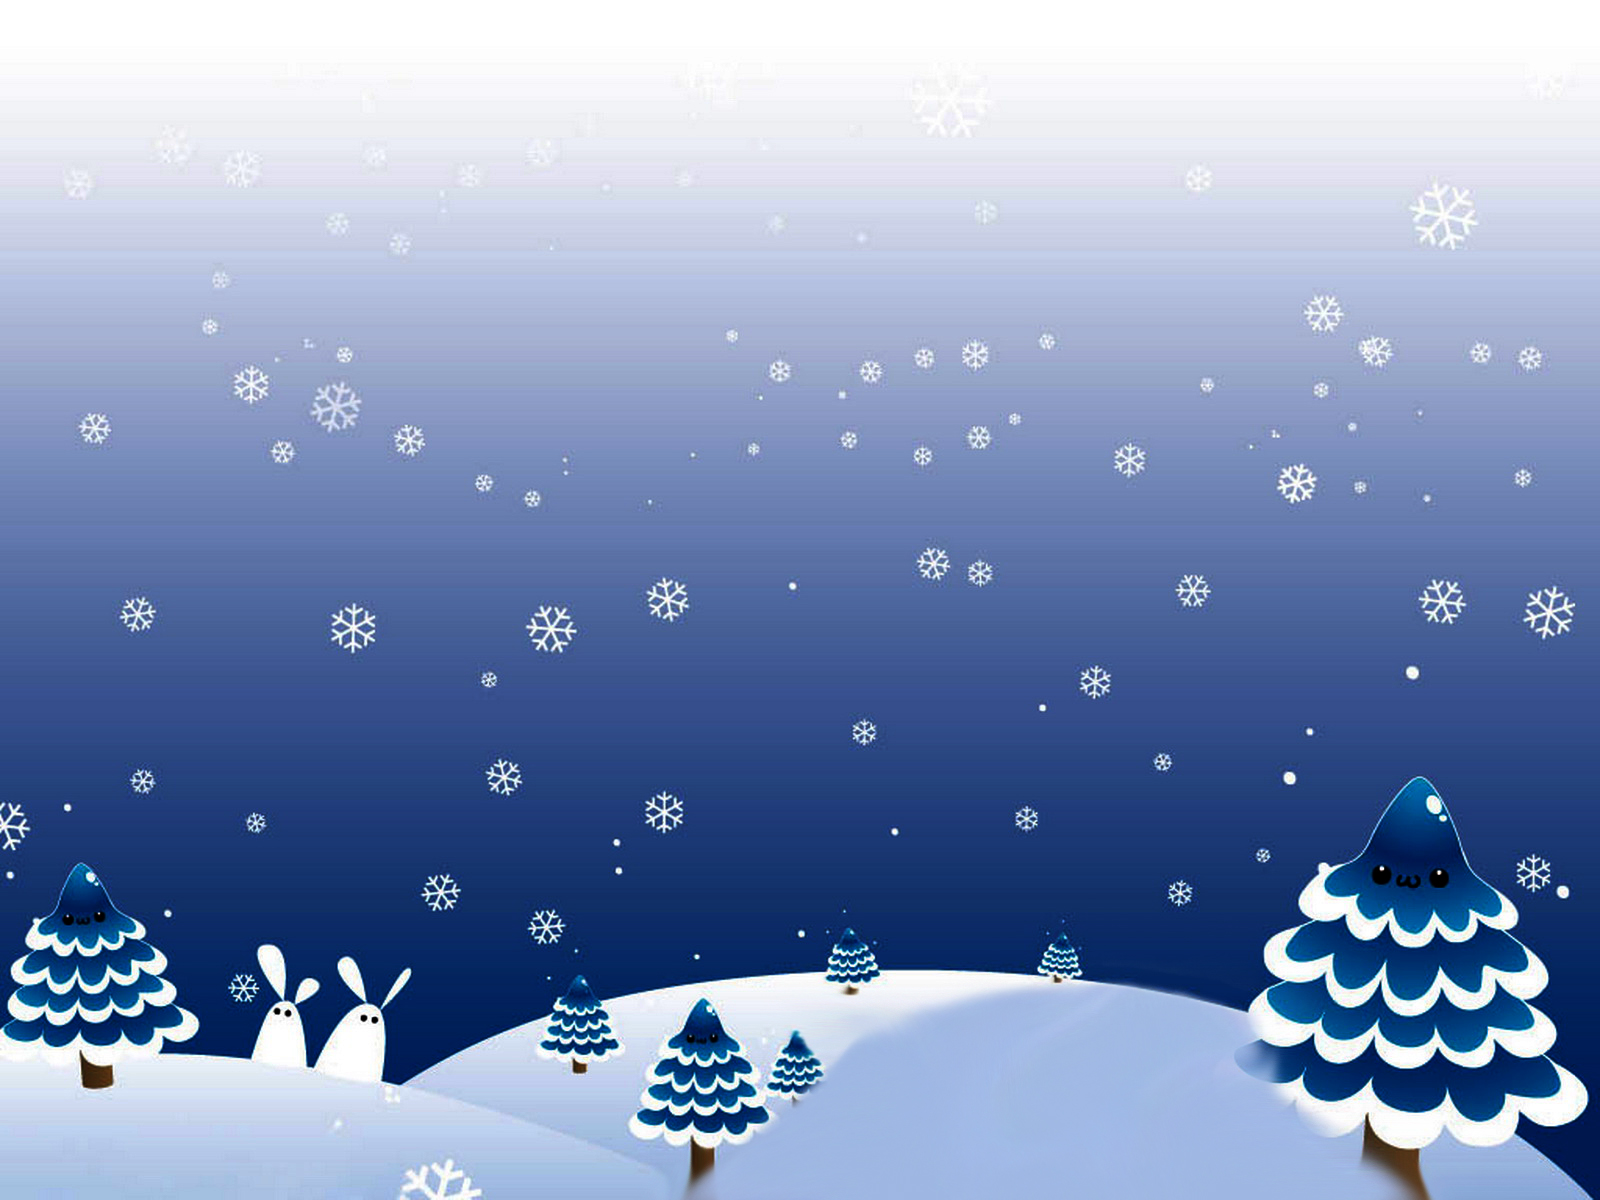 Winter Christmas Day Download PowerPoint Backgrounds   PPT Backgrounds 1600x1200